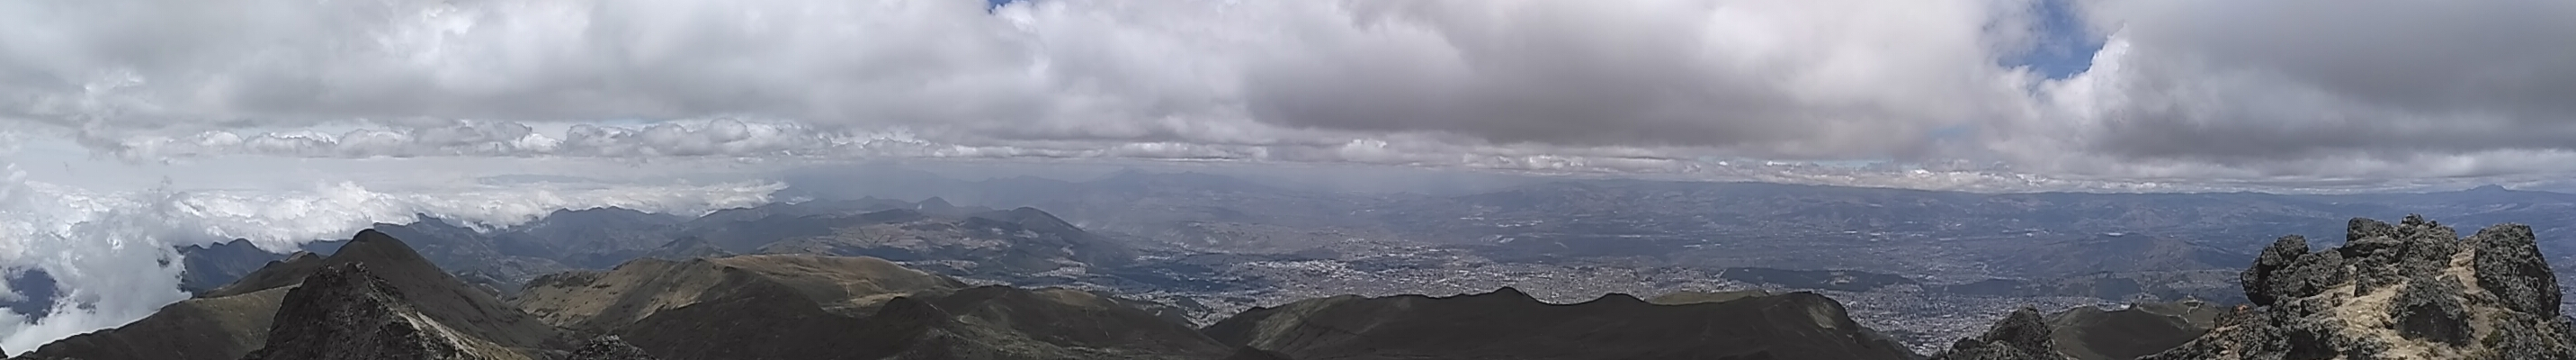 Quito_panoramikoa